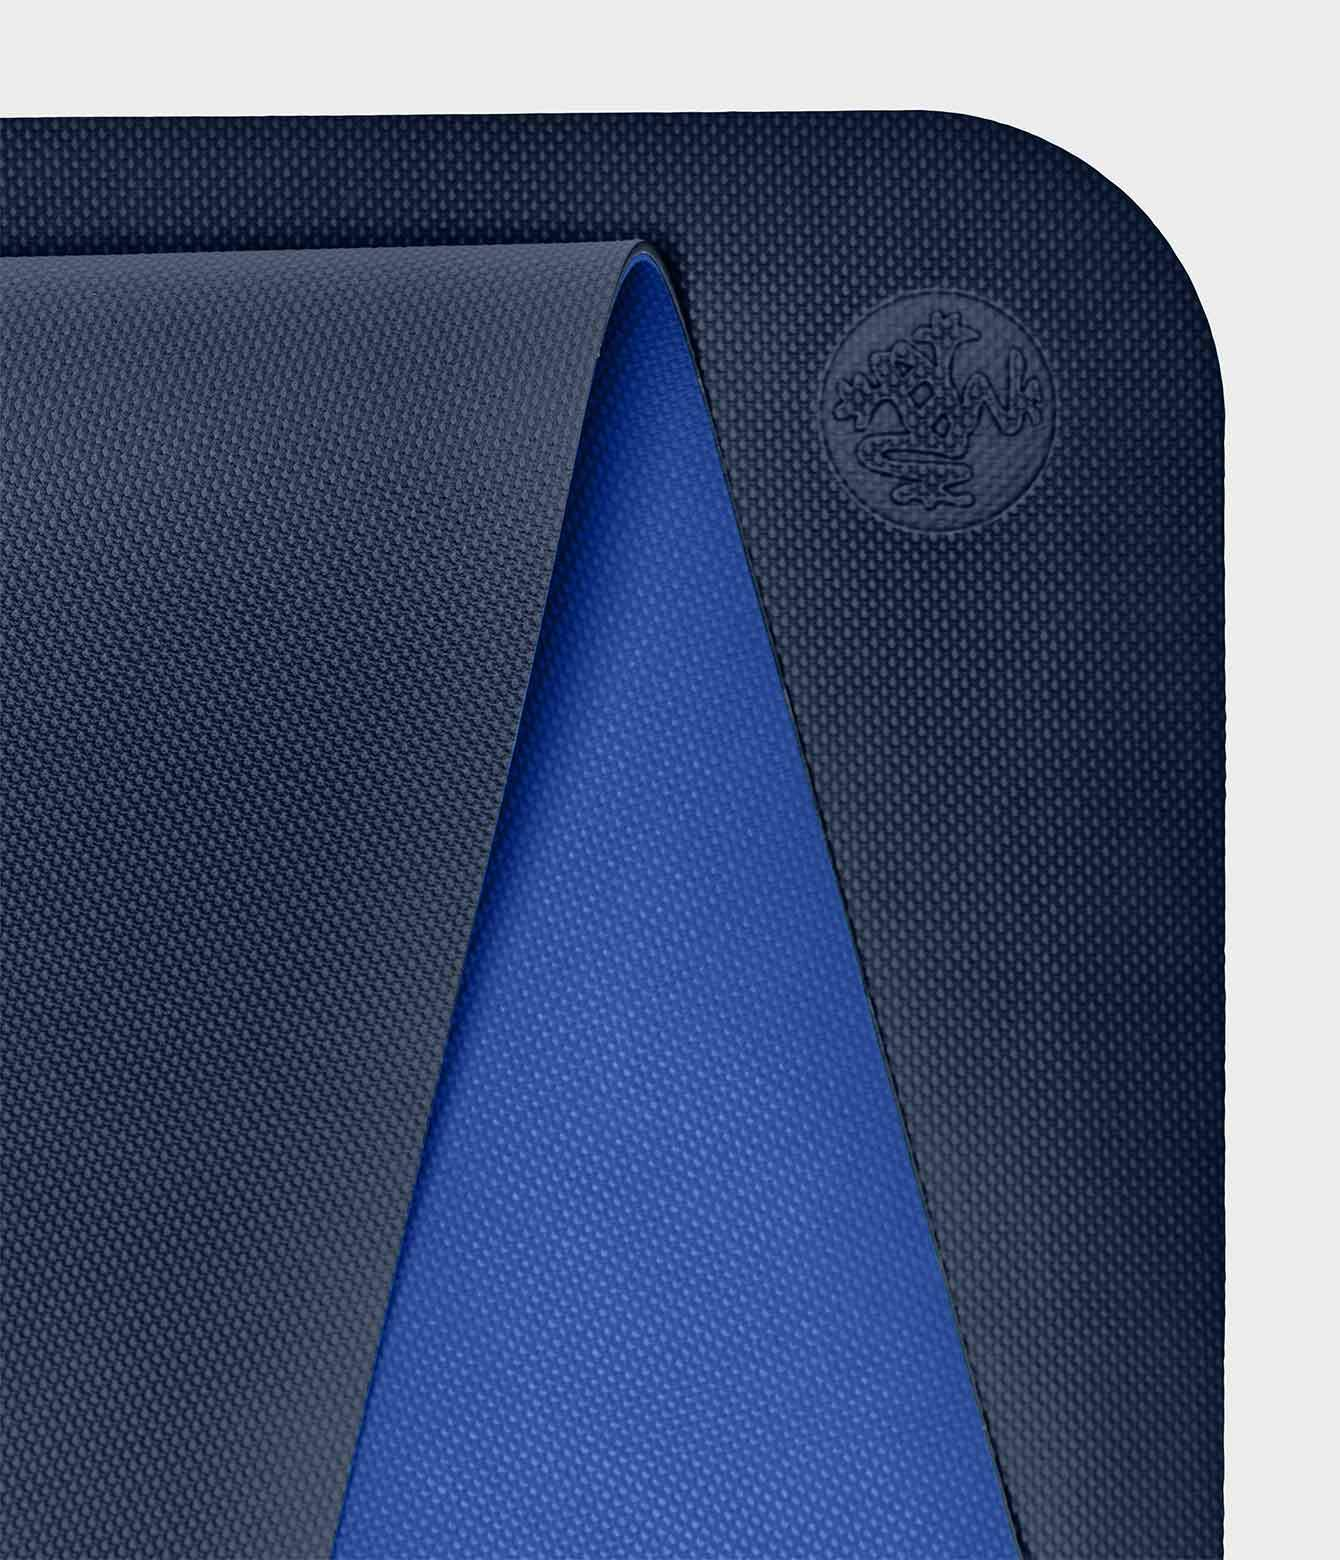 Manduka - Begin Yoga Mat 5mm - Toxic-Free - Weekendbee - sustainable sportswear